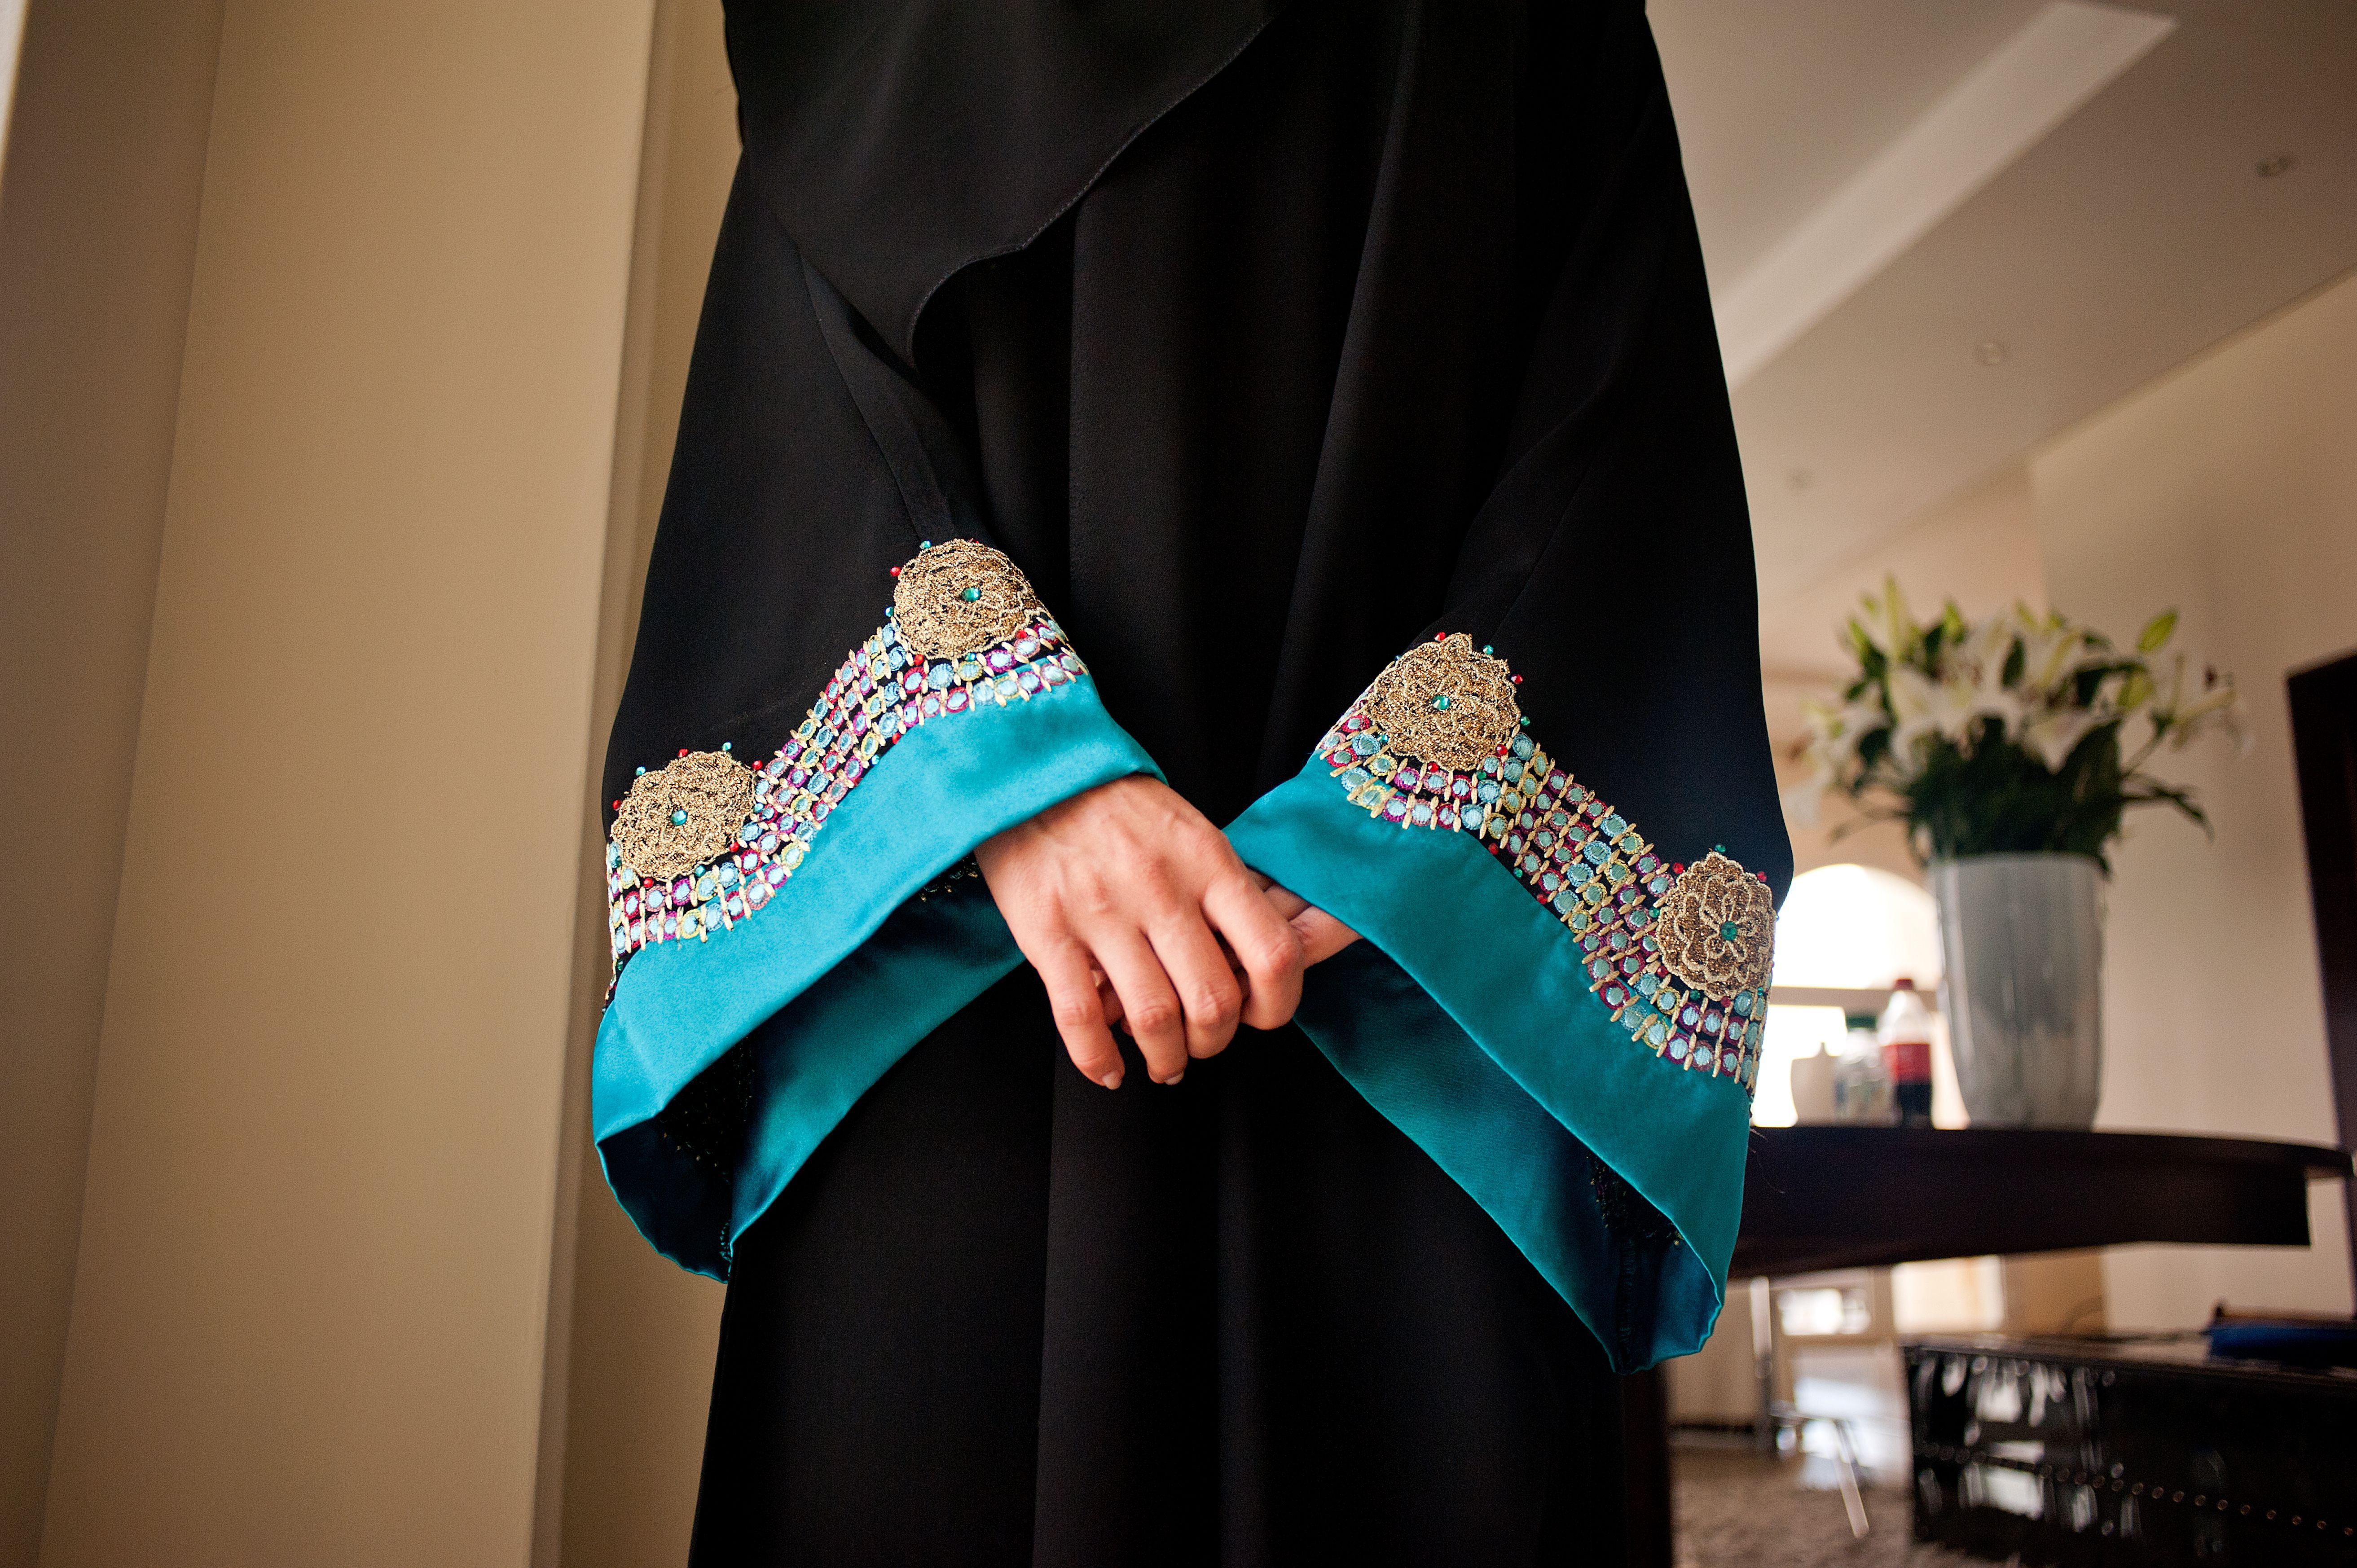 A woman wearing an abaya with colorful sleeves